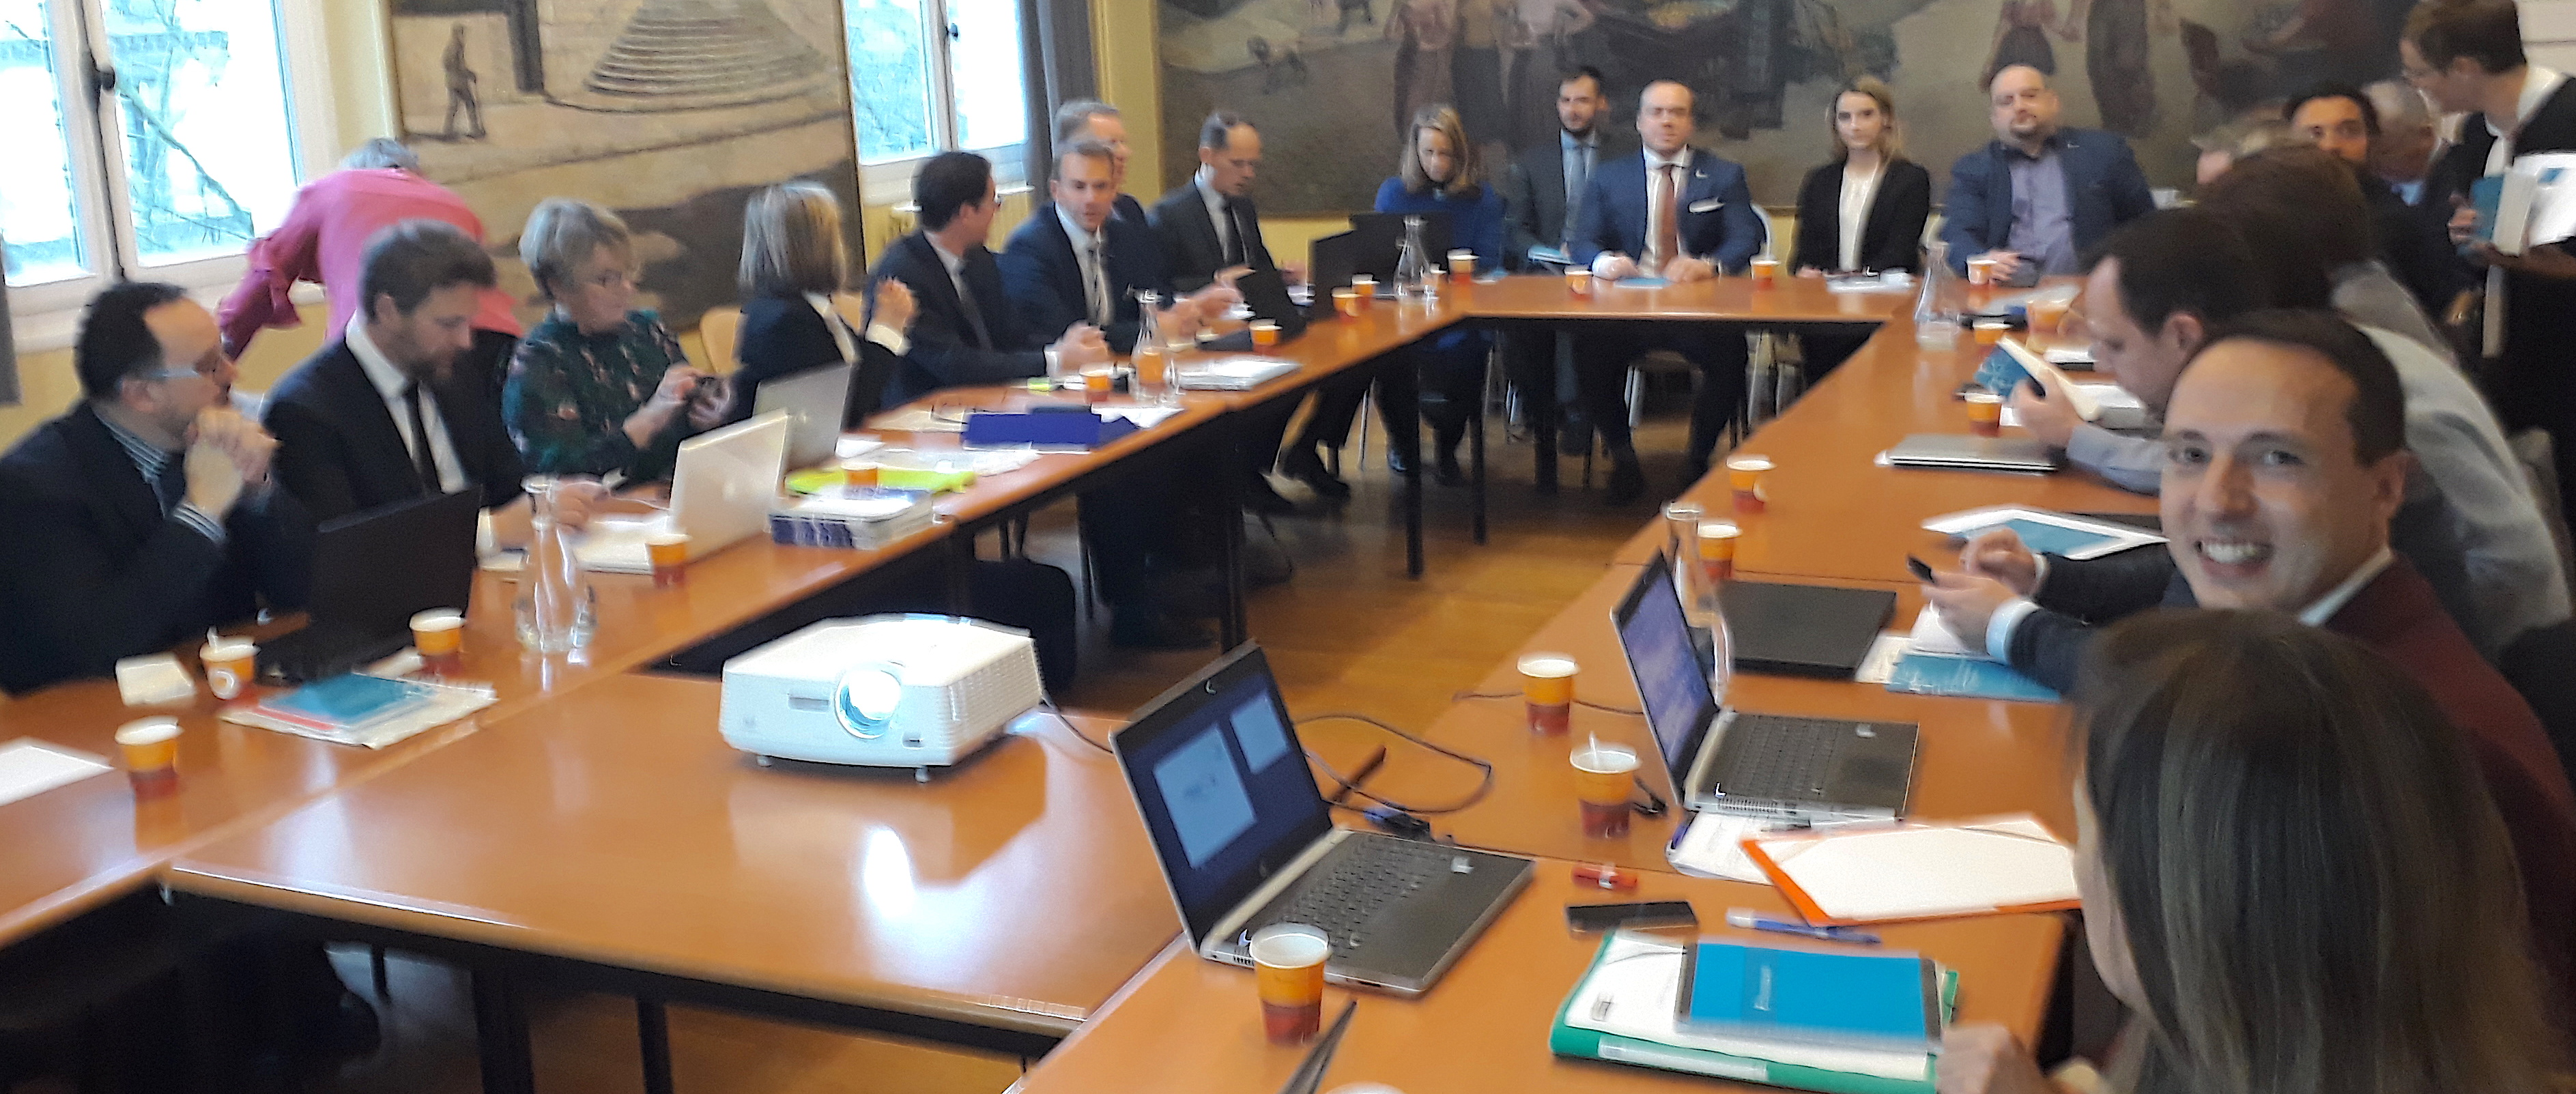 The Security in Public Spaces Partnership at its kick-off meeting in Paris in January 2019